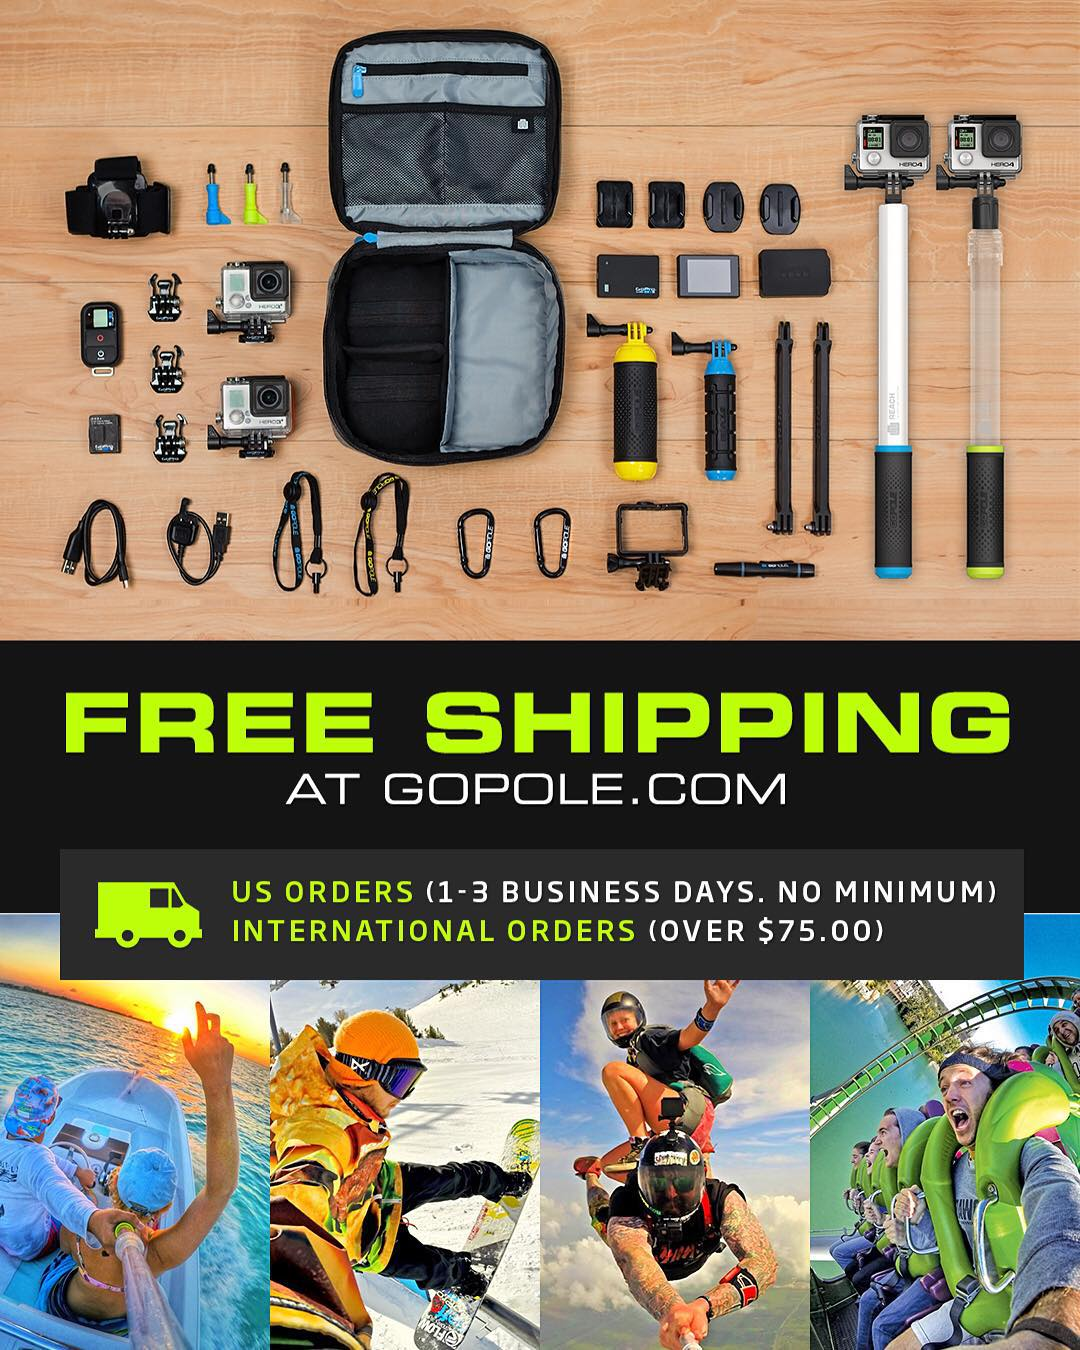 Free 1-3 day shipping (USA) + Free worldwide shipping on all orders over $75 at GoPole.com. Shop now by clicking the link in our bio, limited offer. #gopole #freeshipping #